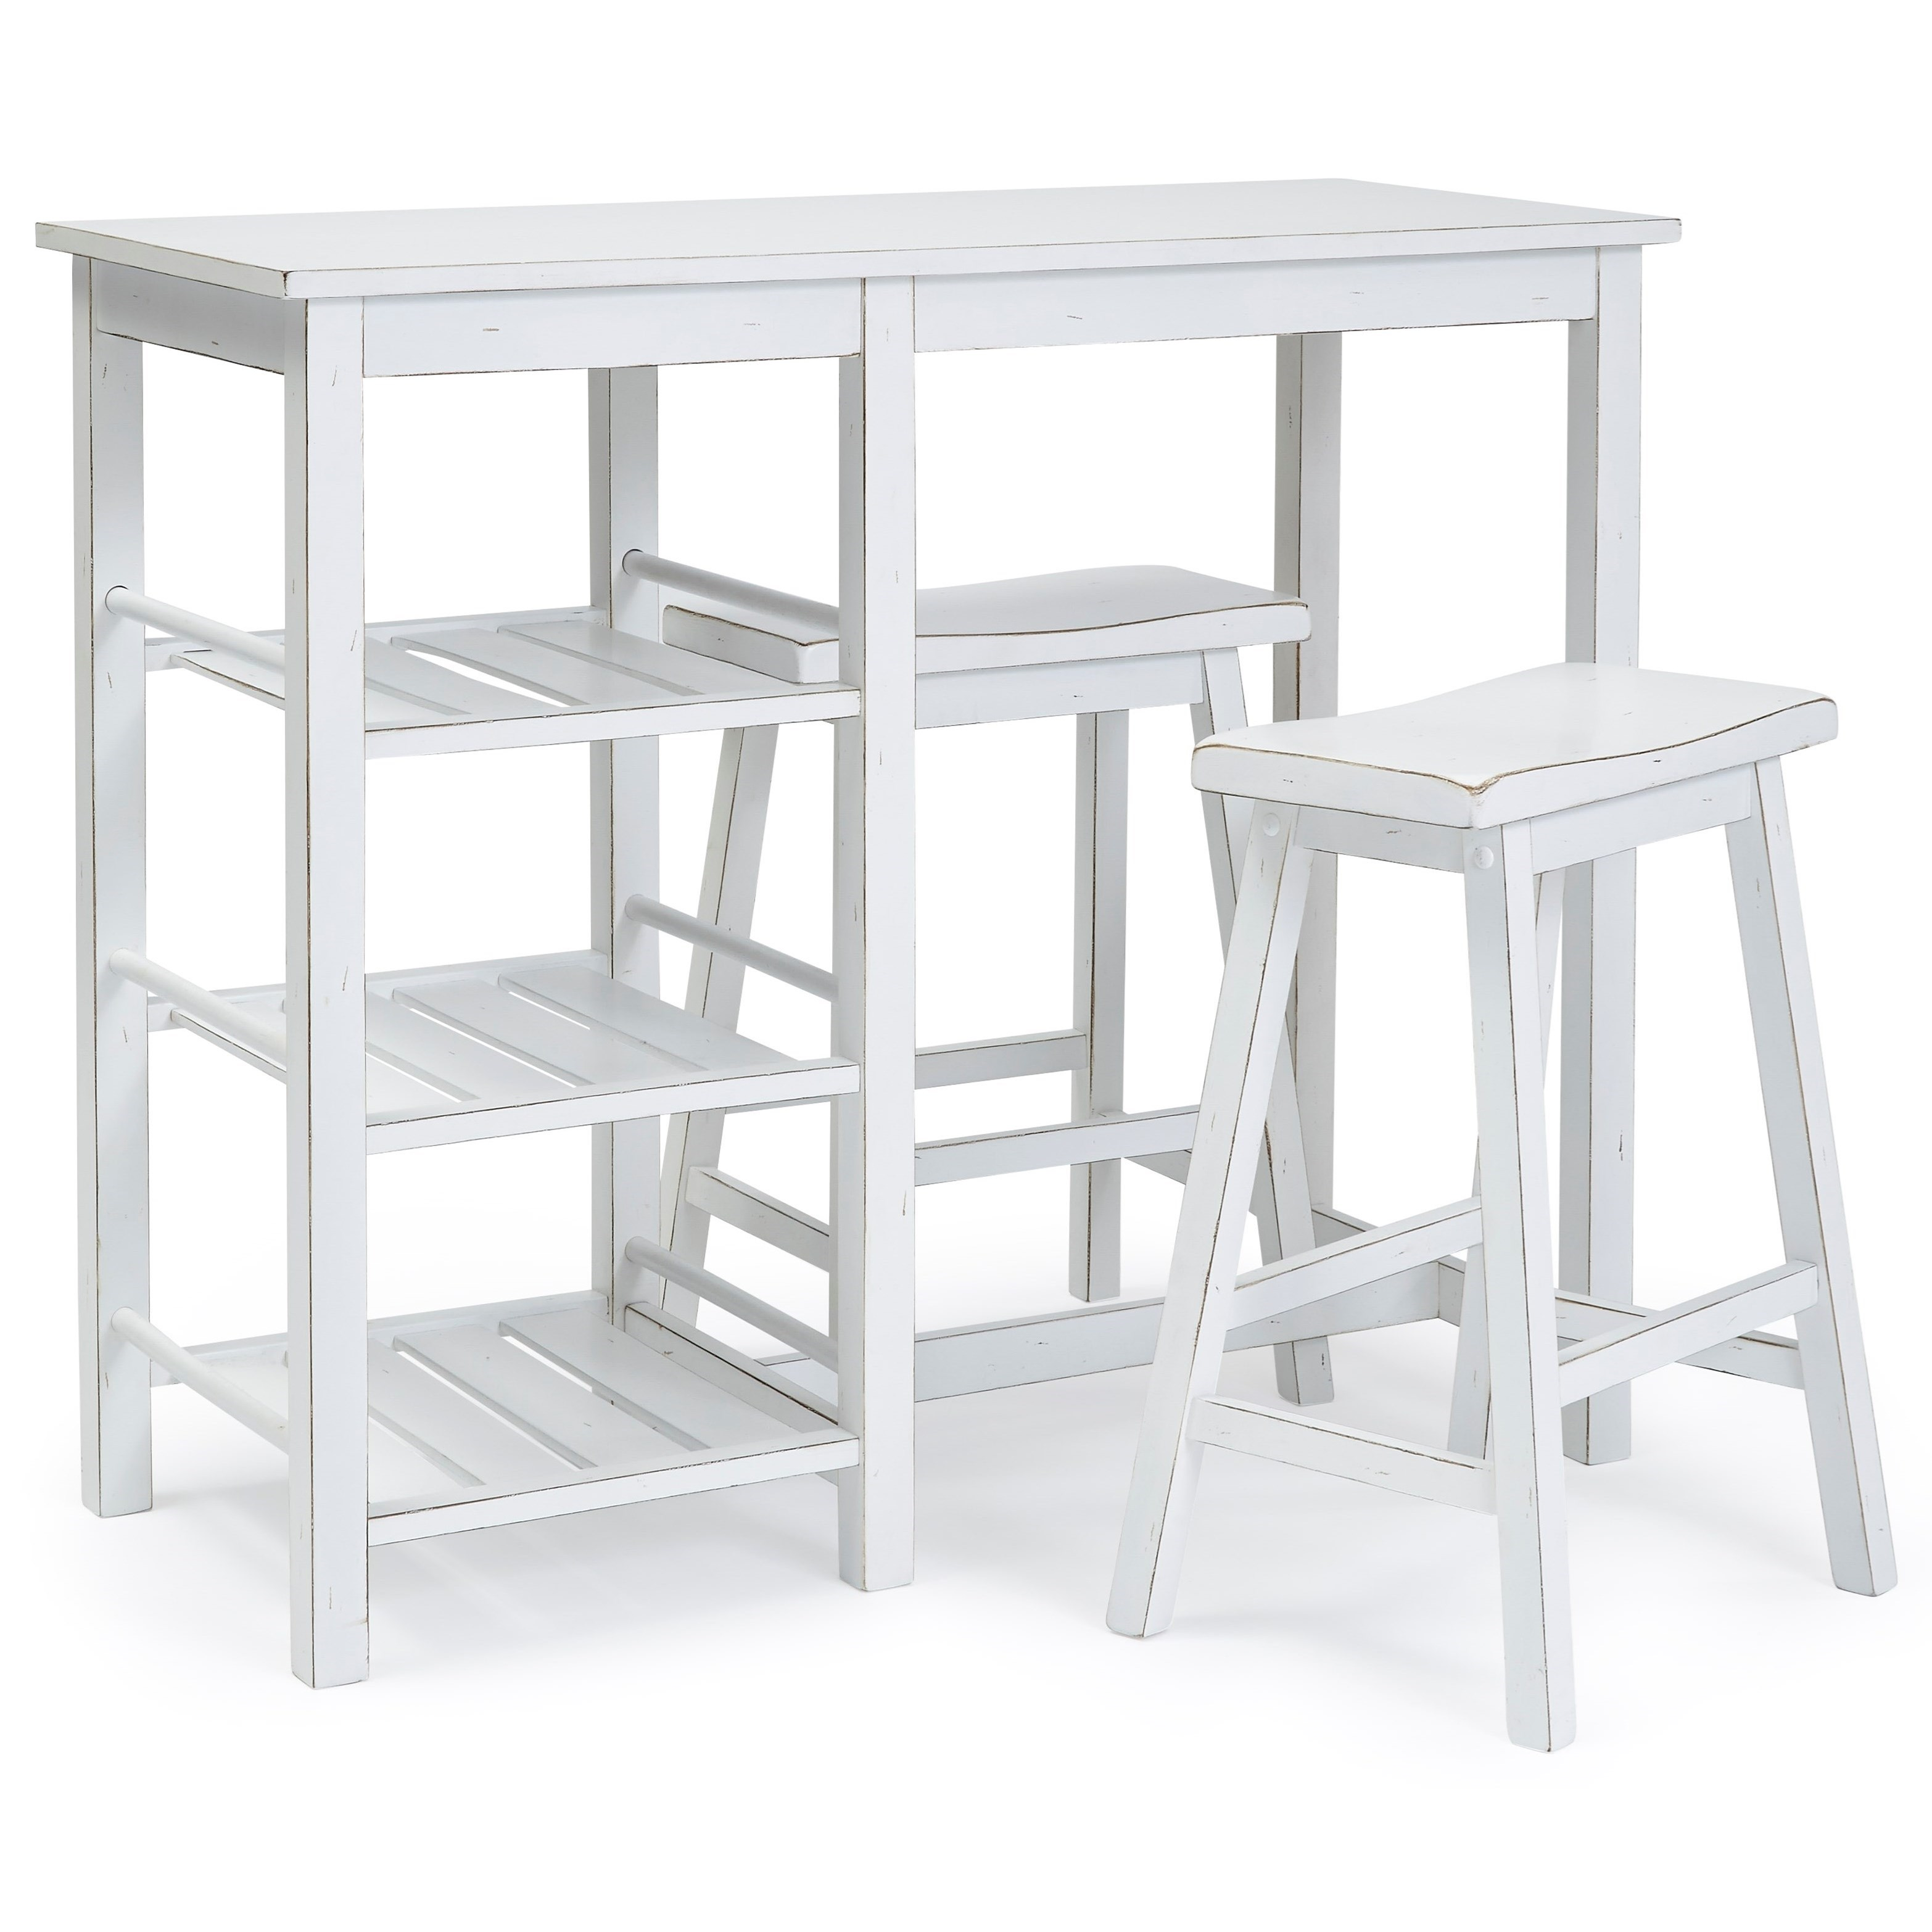 Counter Table With 2 Stools